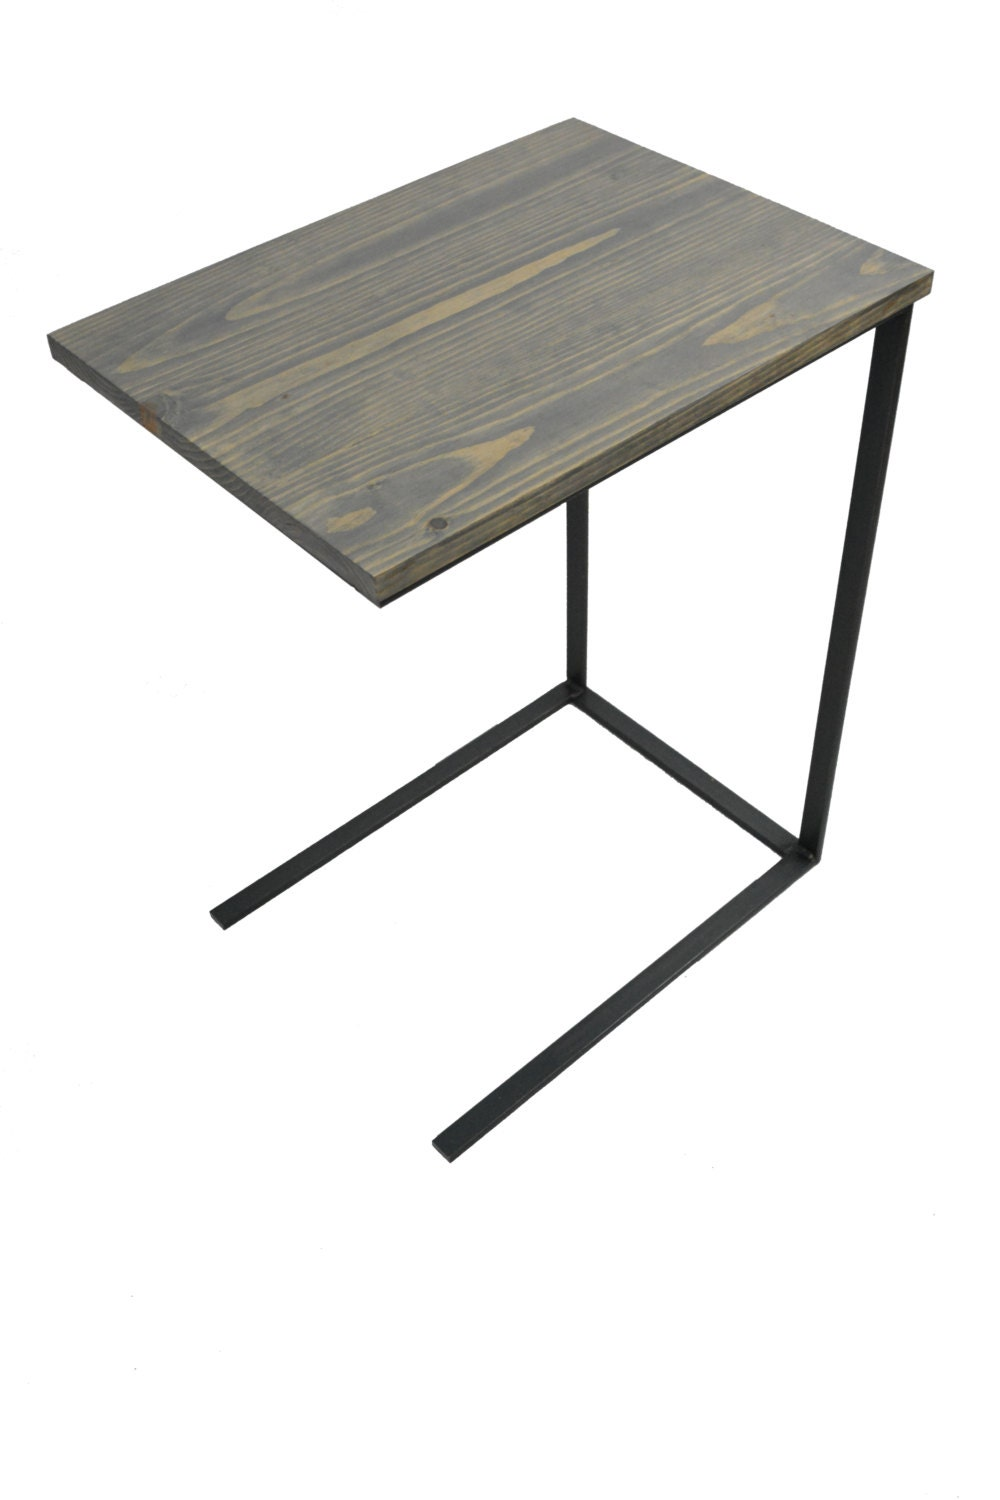 Tv tray table laptop desk c table side by blackironmetalworks for Table under tv